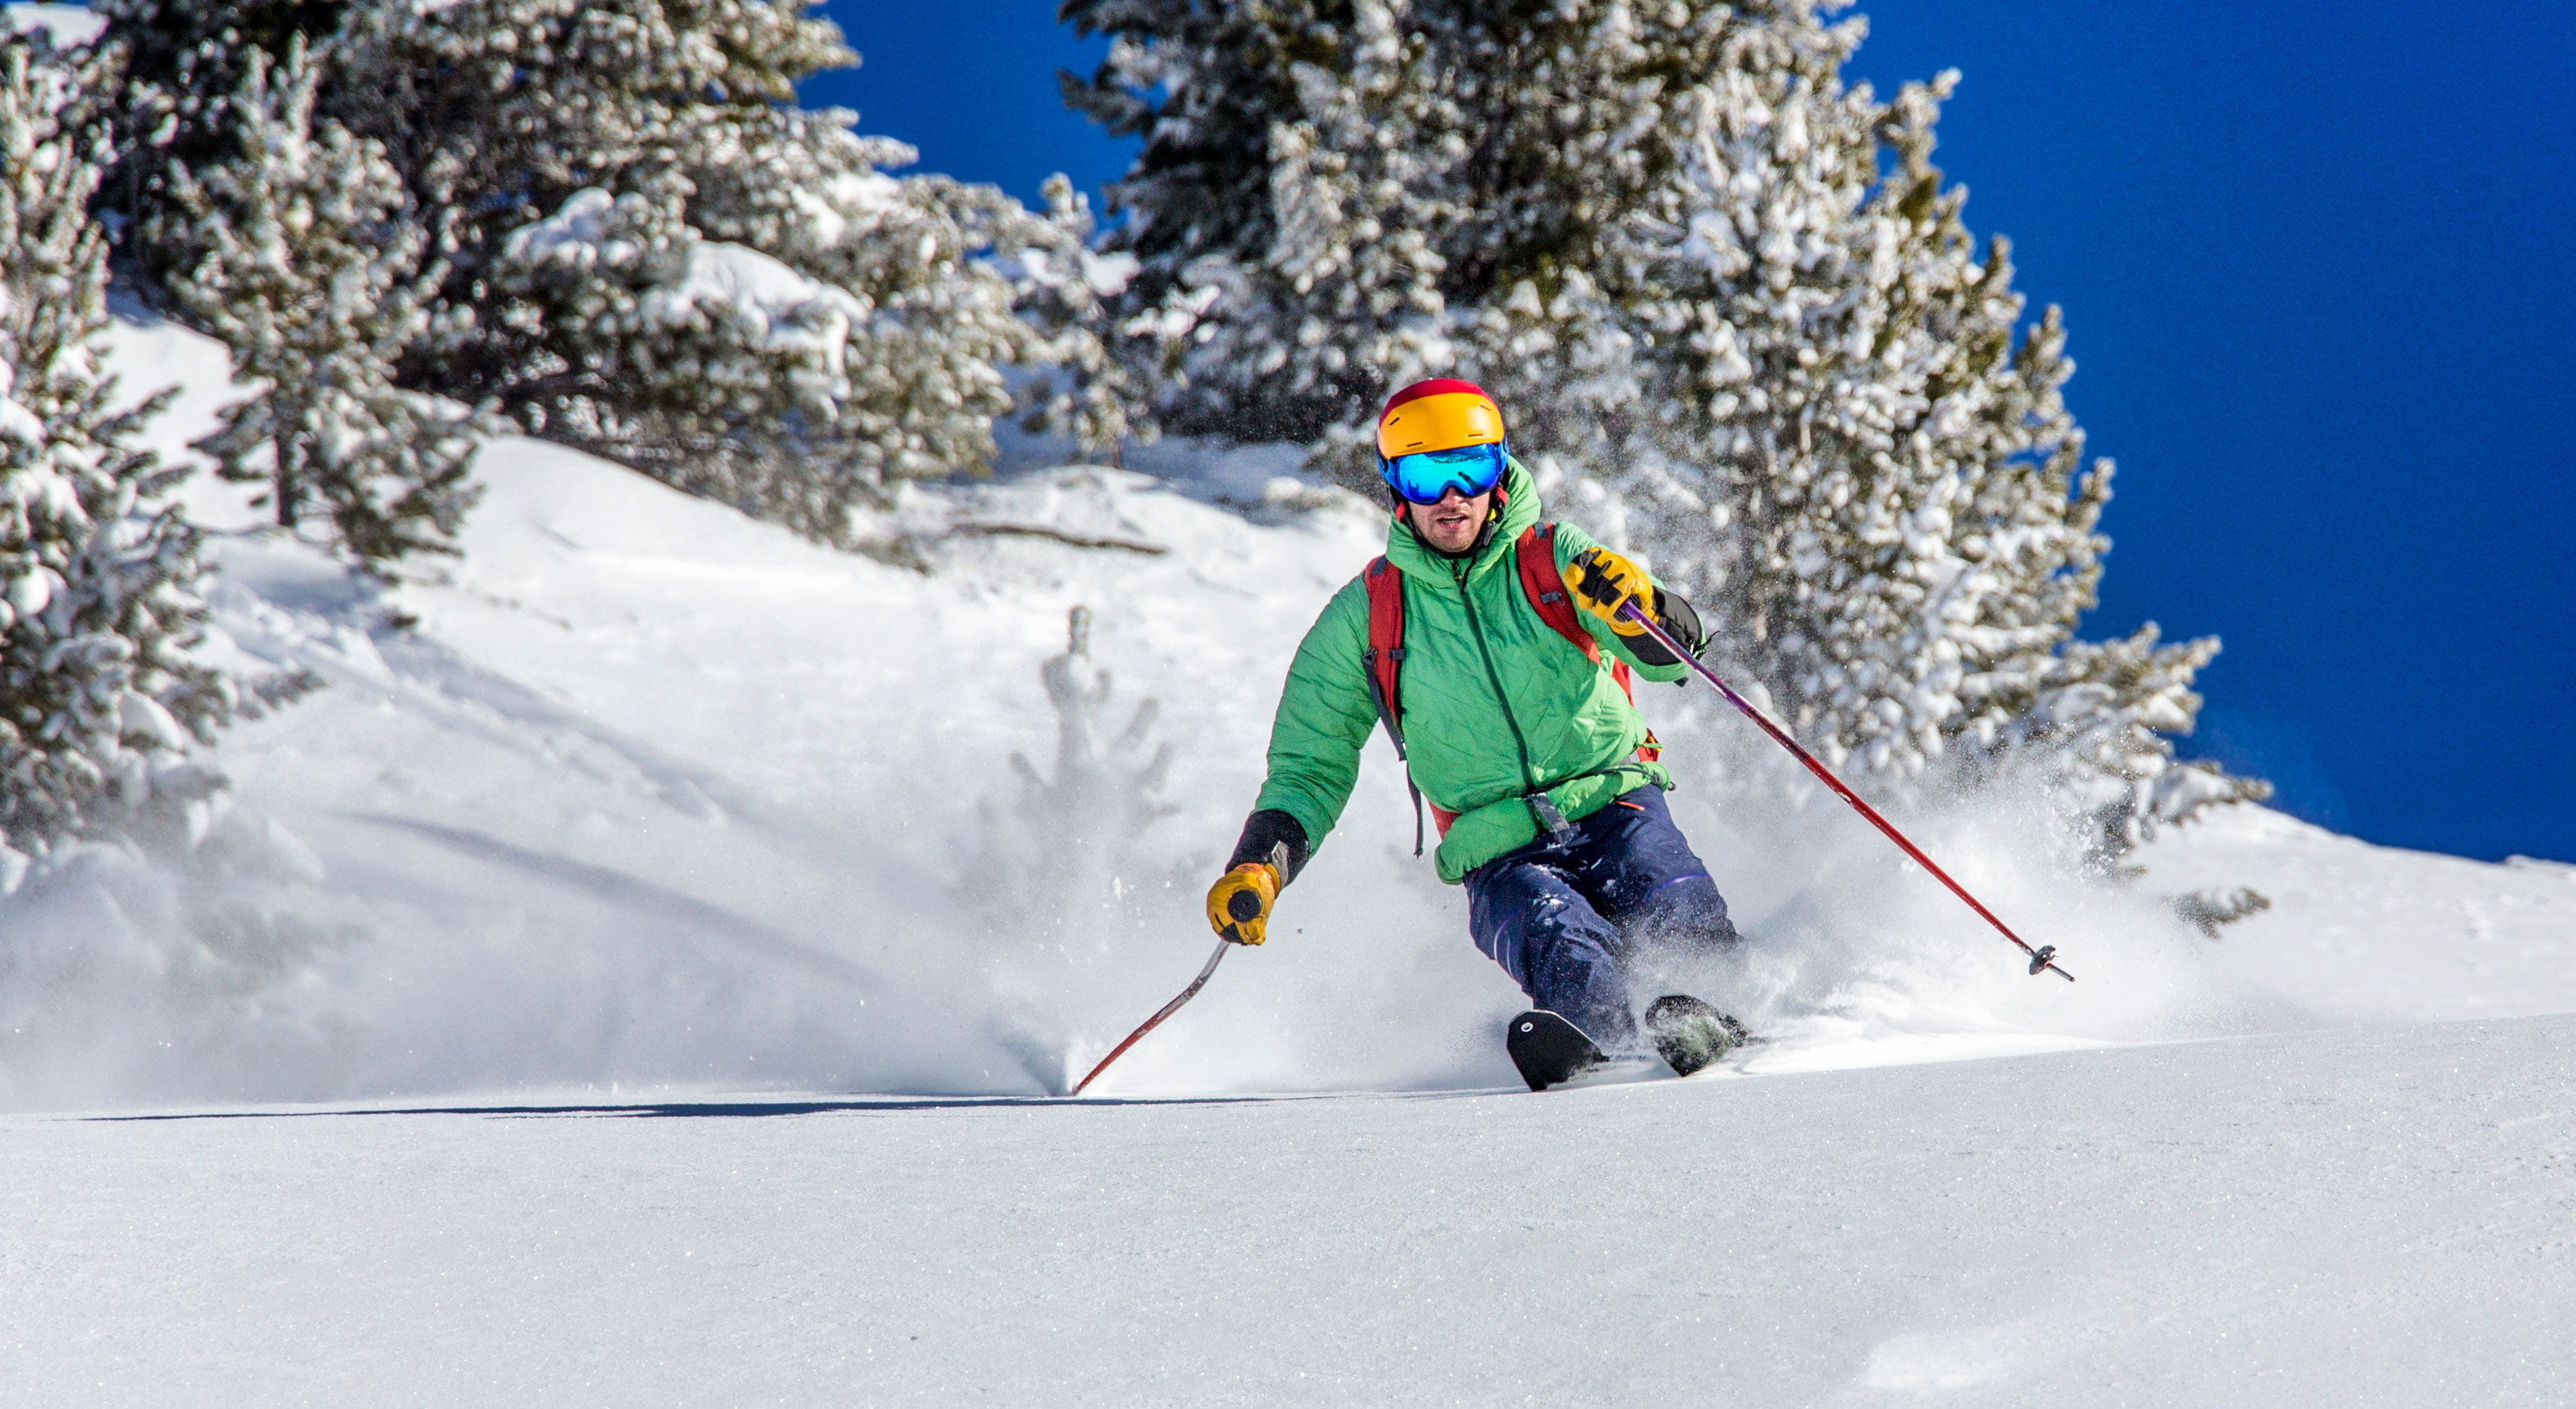 Skier in powdery snow.